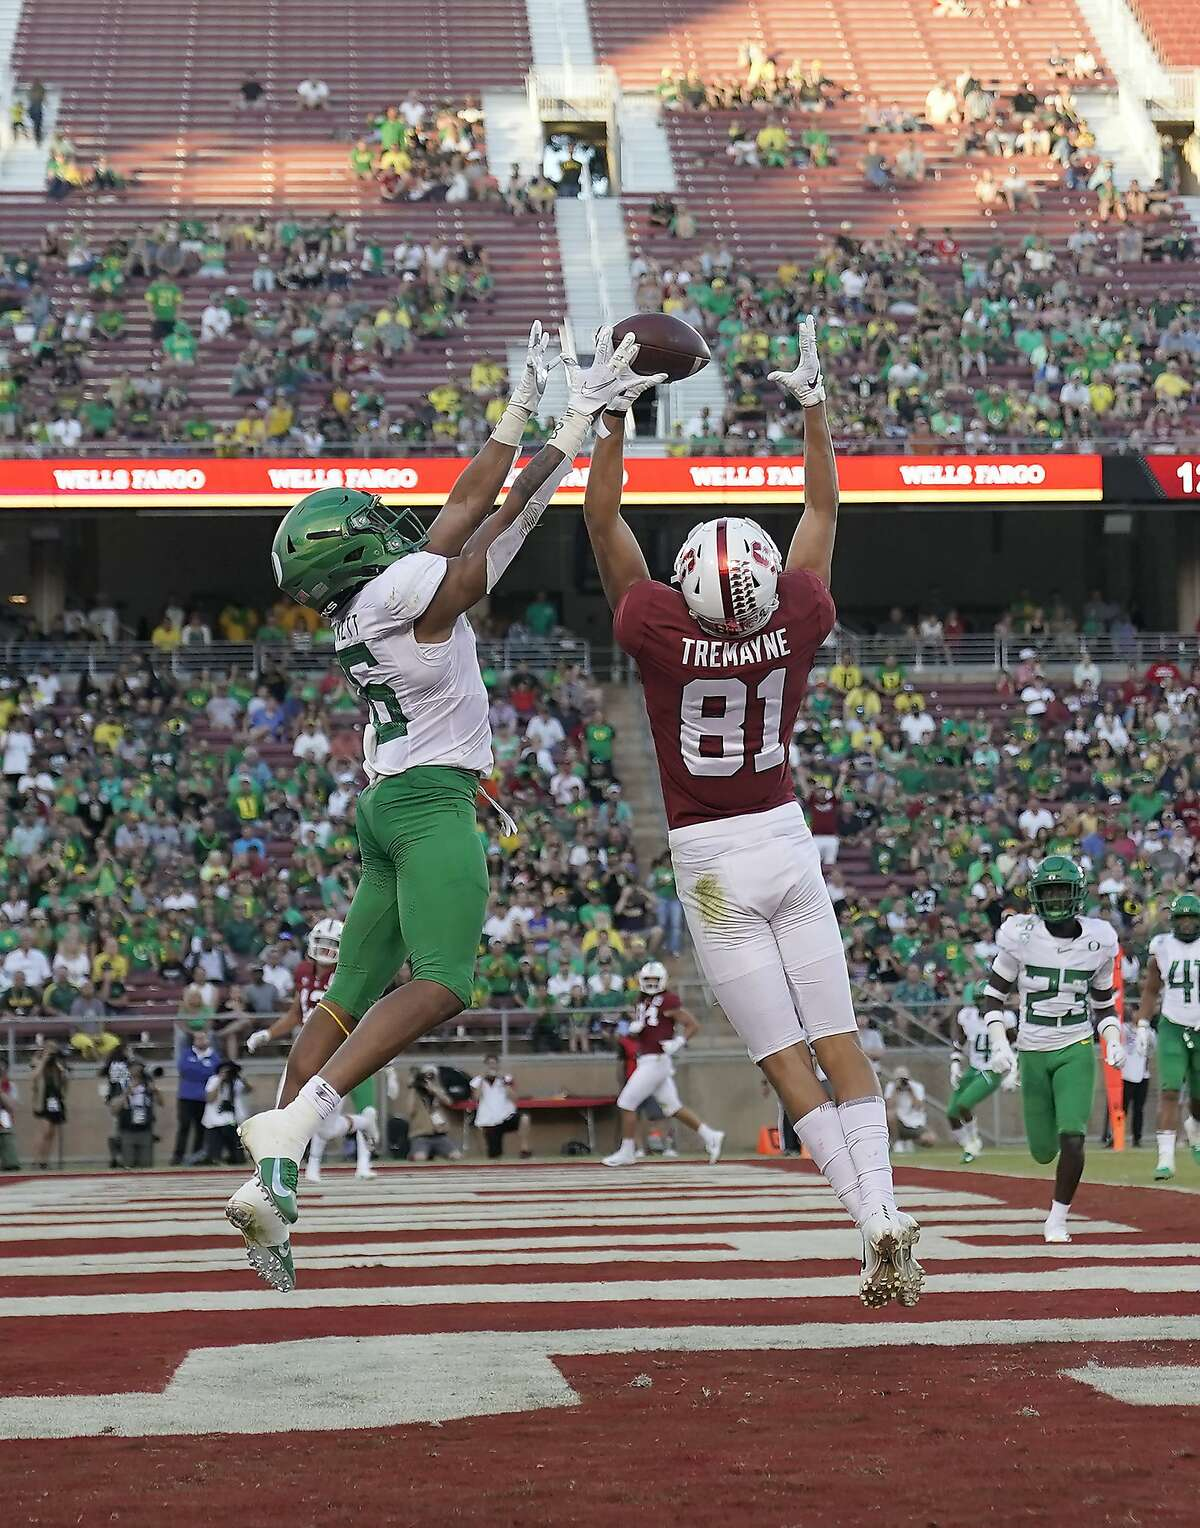 Oregon cornerback Deommodore Lenoir (6) breaks up a pass in the end zone for Stanford wide receiver Brycen Tremayne (81) during the second half of an NCAA college football game Saturday, Sept. 21, 2019, in Stanford, Calif. (AP Photo/Tony Avelar)